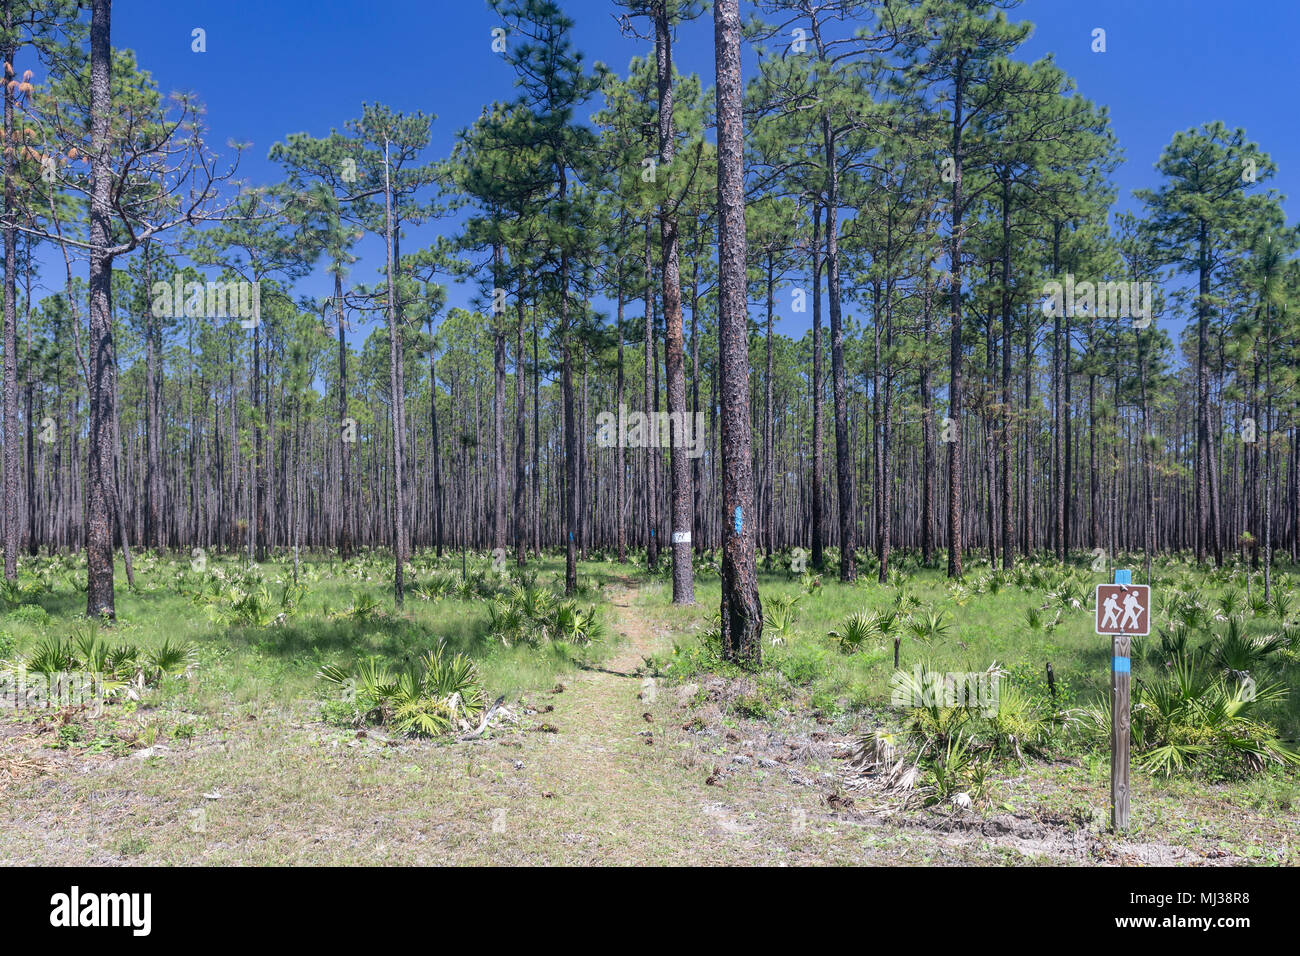 A hiking trail runs through a pine flatwoods habitat in Apalachicola National Forest, Florida. - Stock Image